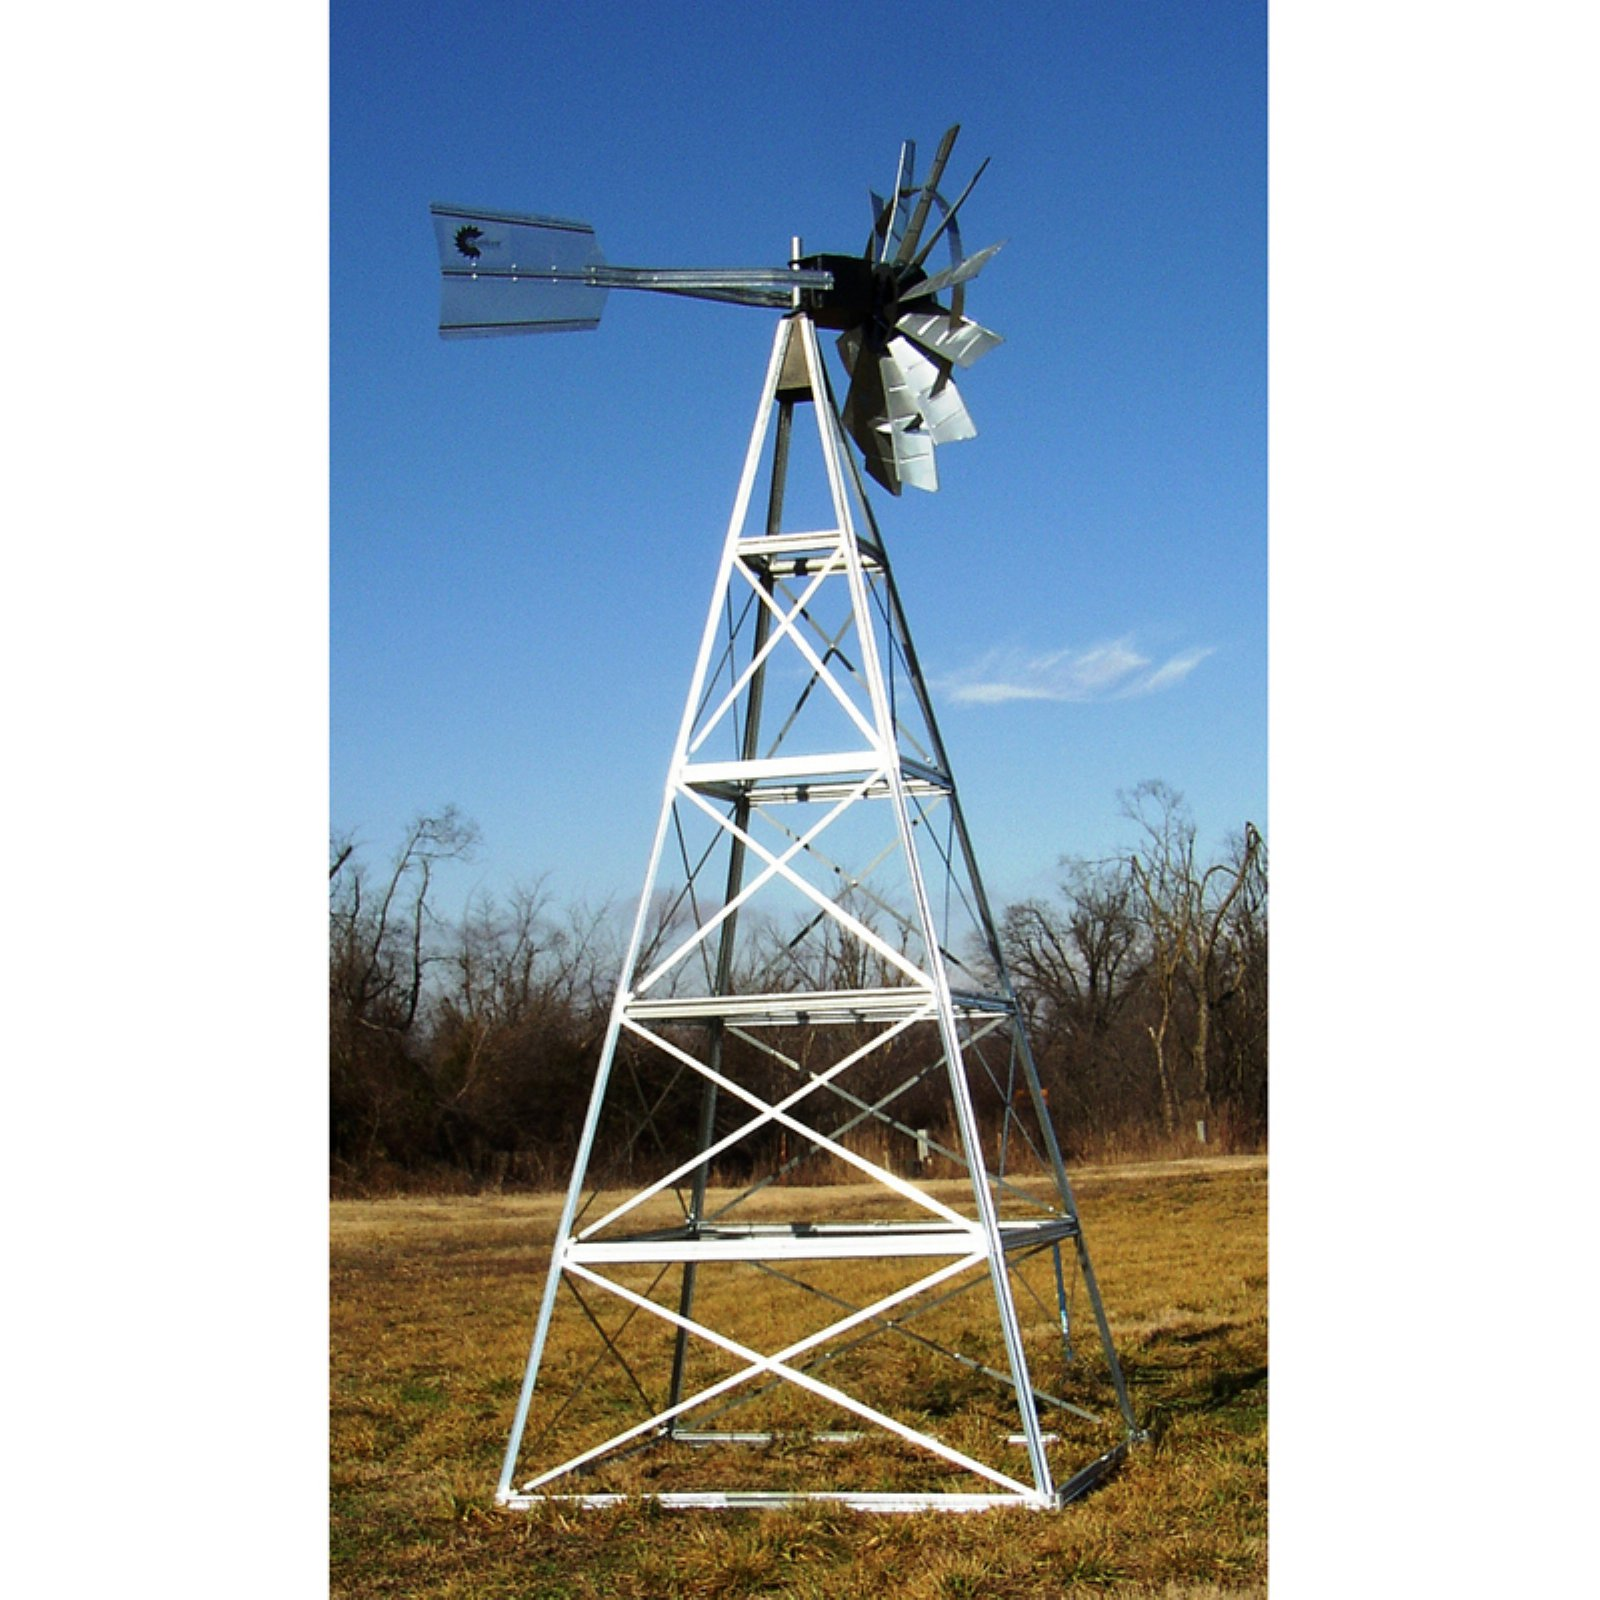 20 ft. Customized Powder Coated Steel Underwater Aeration Windmills by Windmills